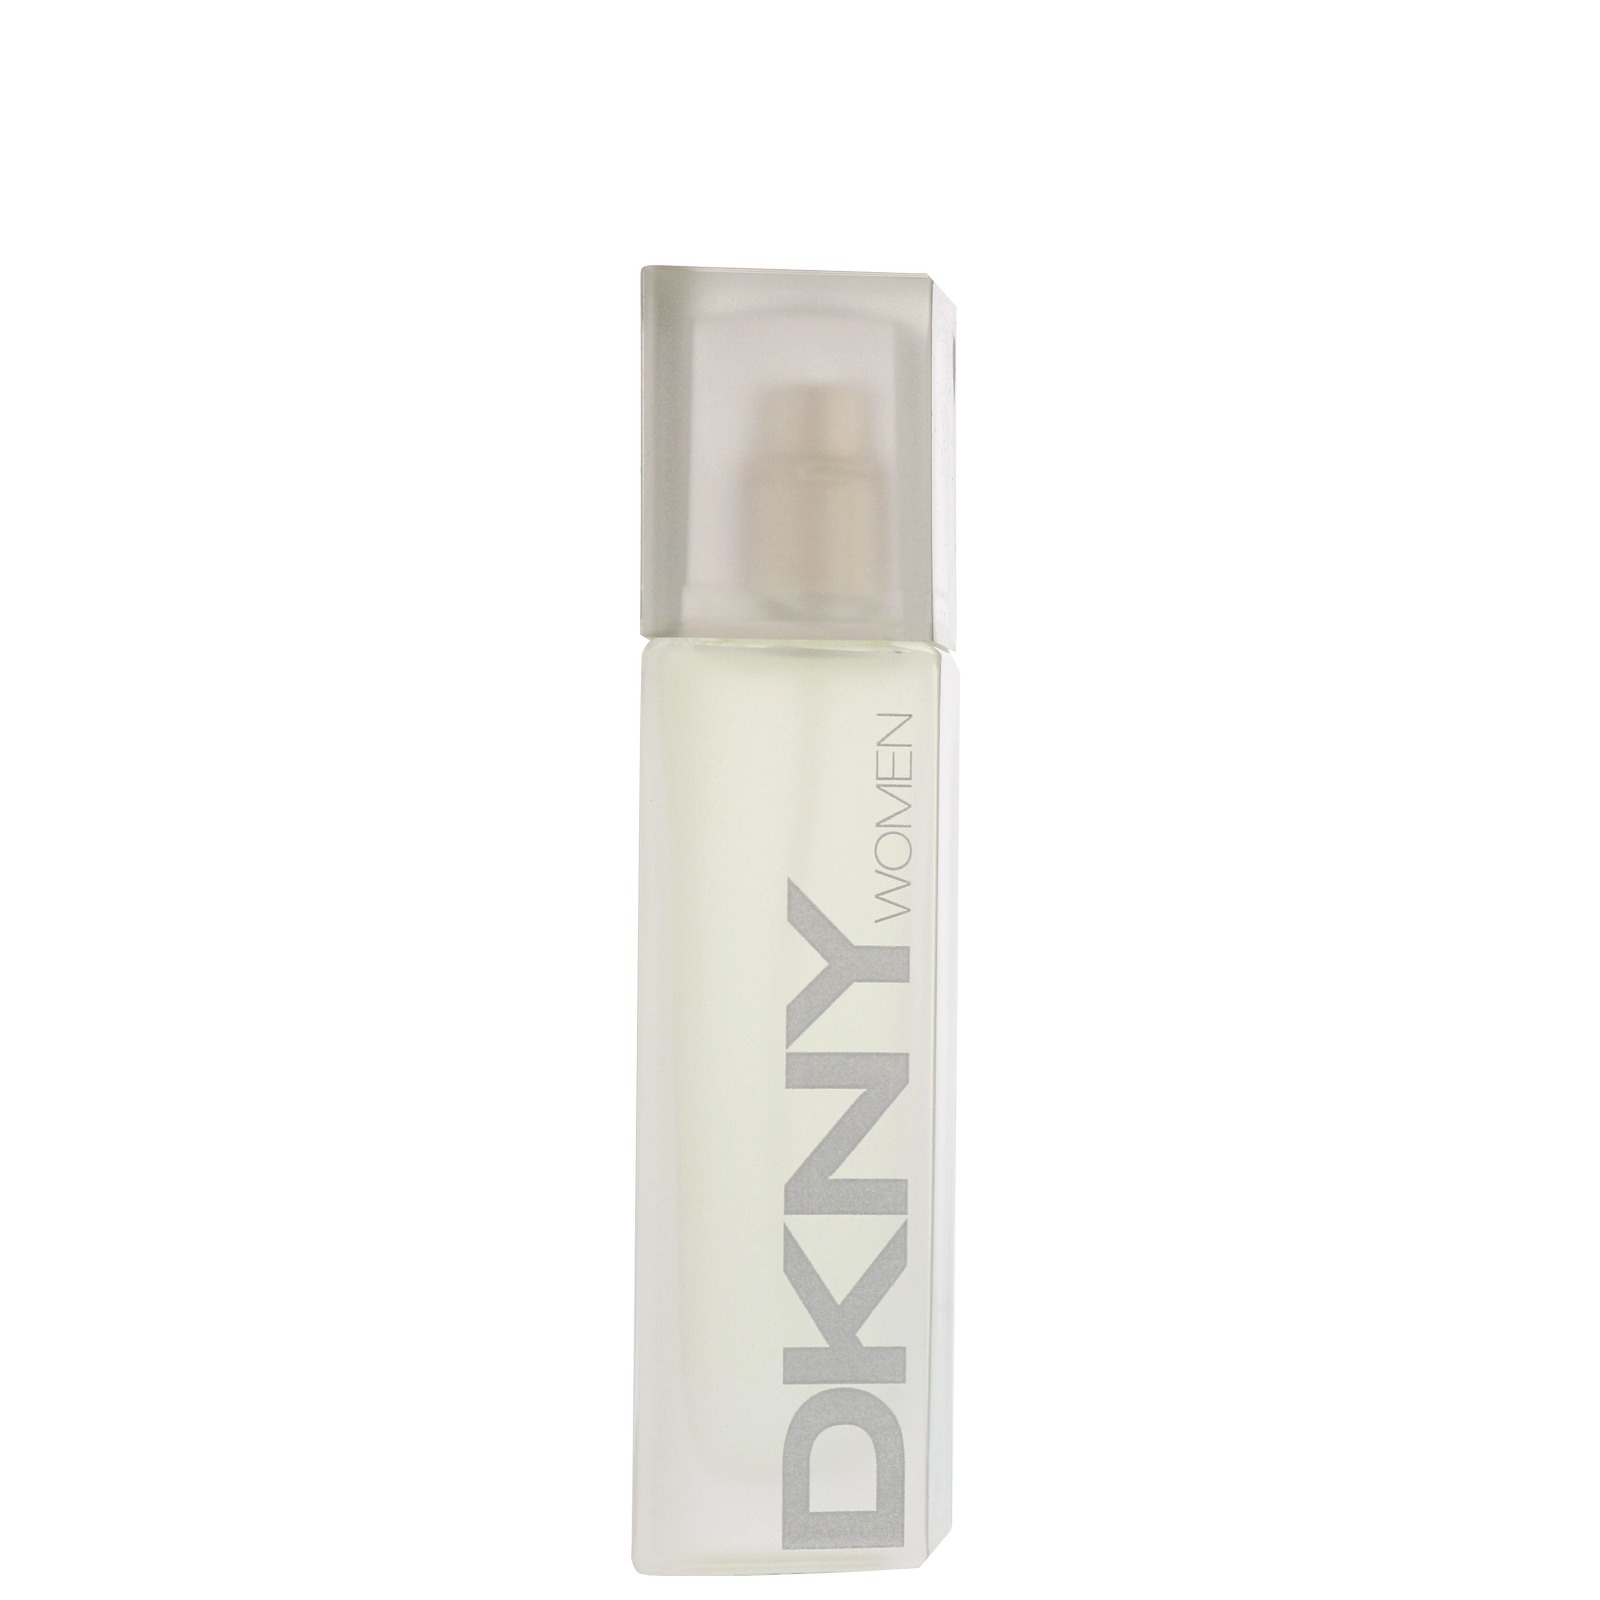 DKNY Women Energizing Eau de Parfum Spray 30ml